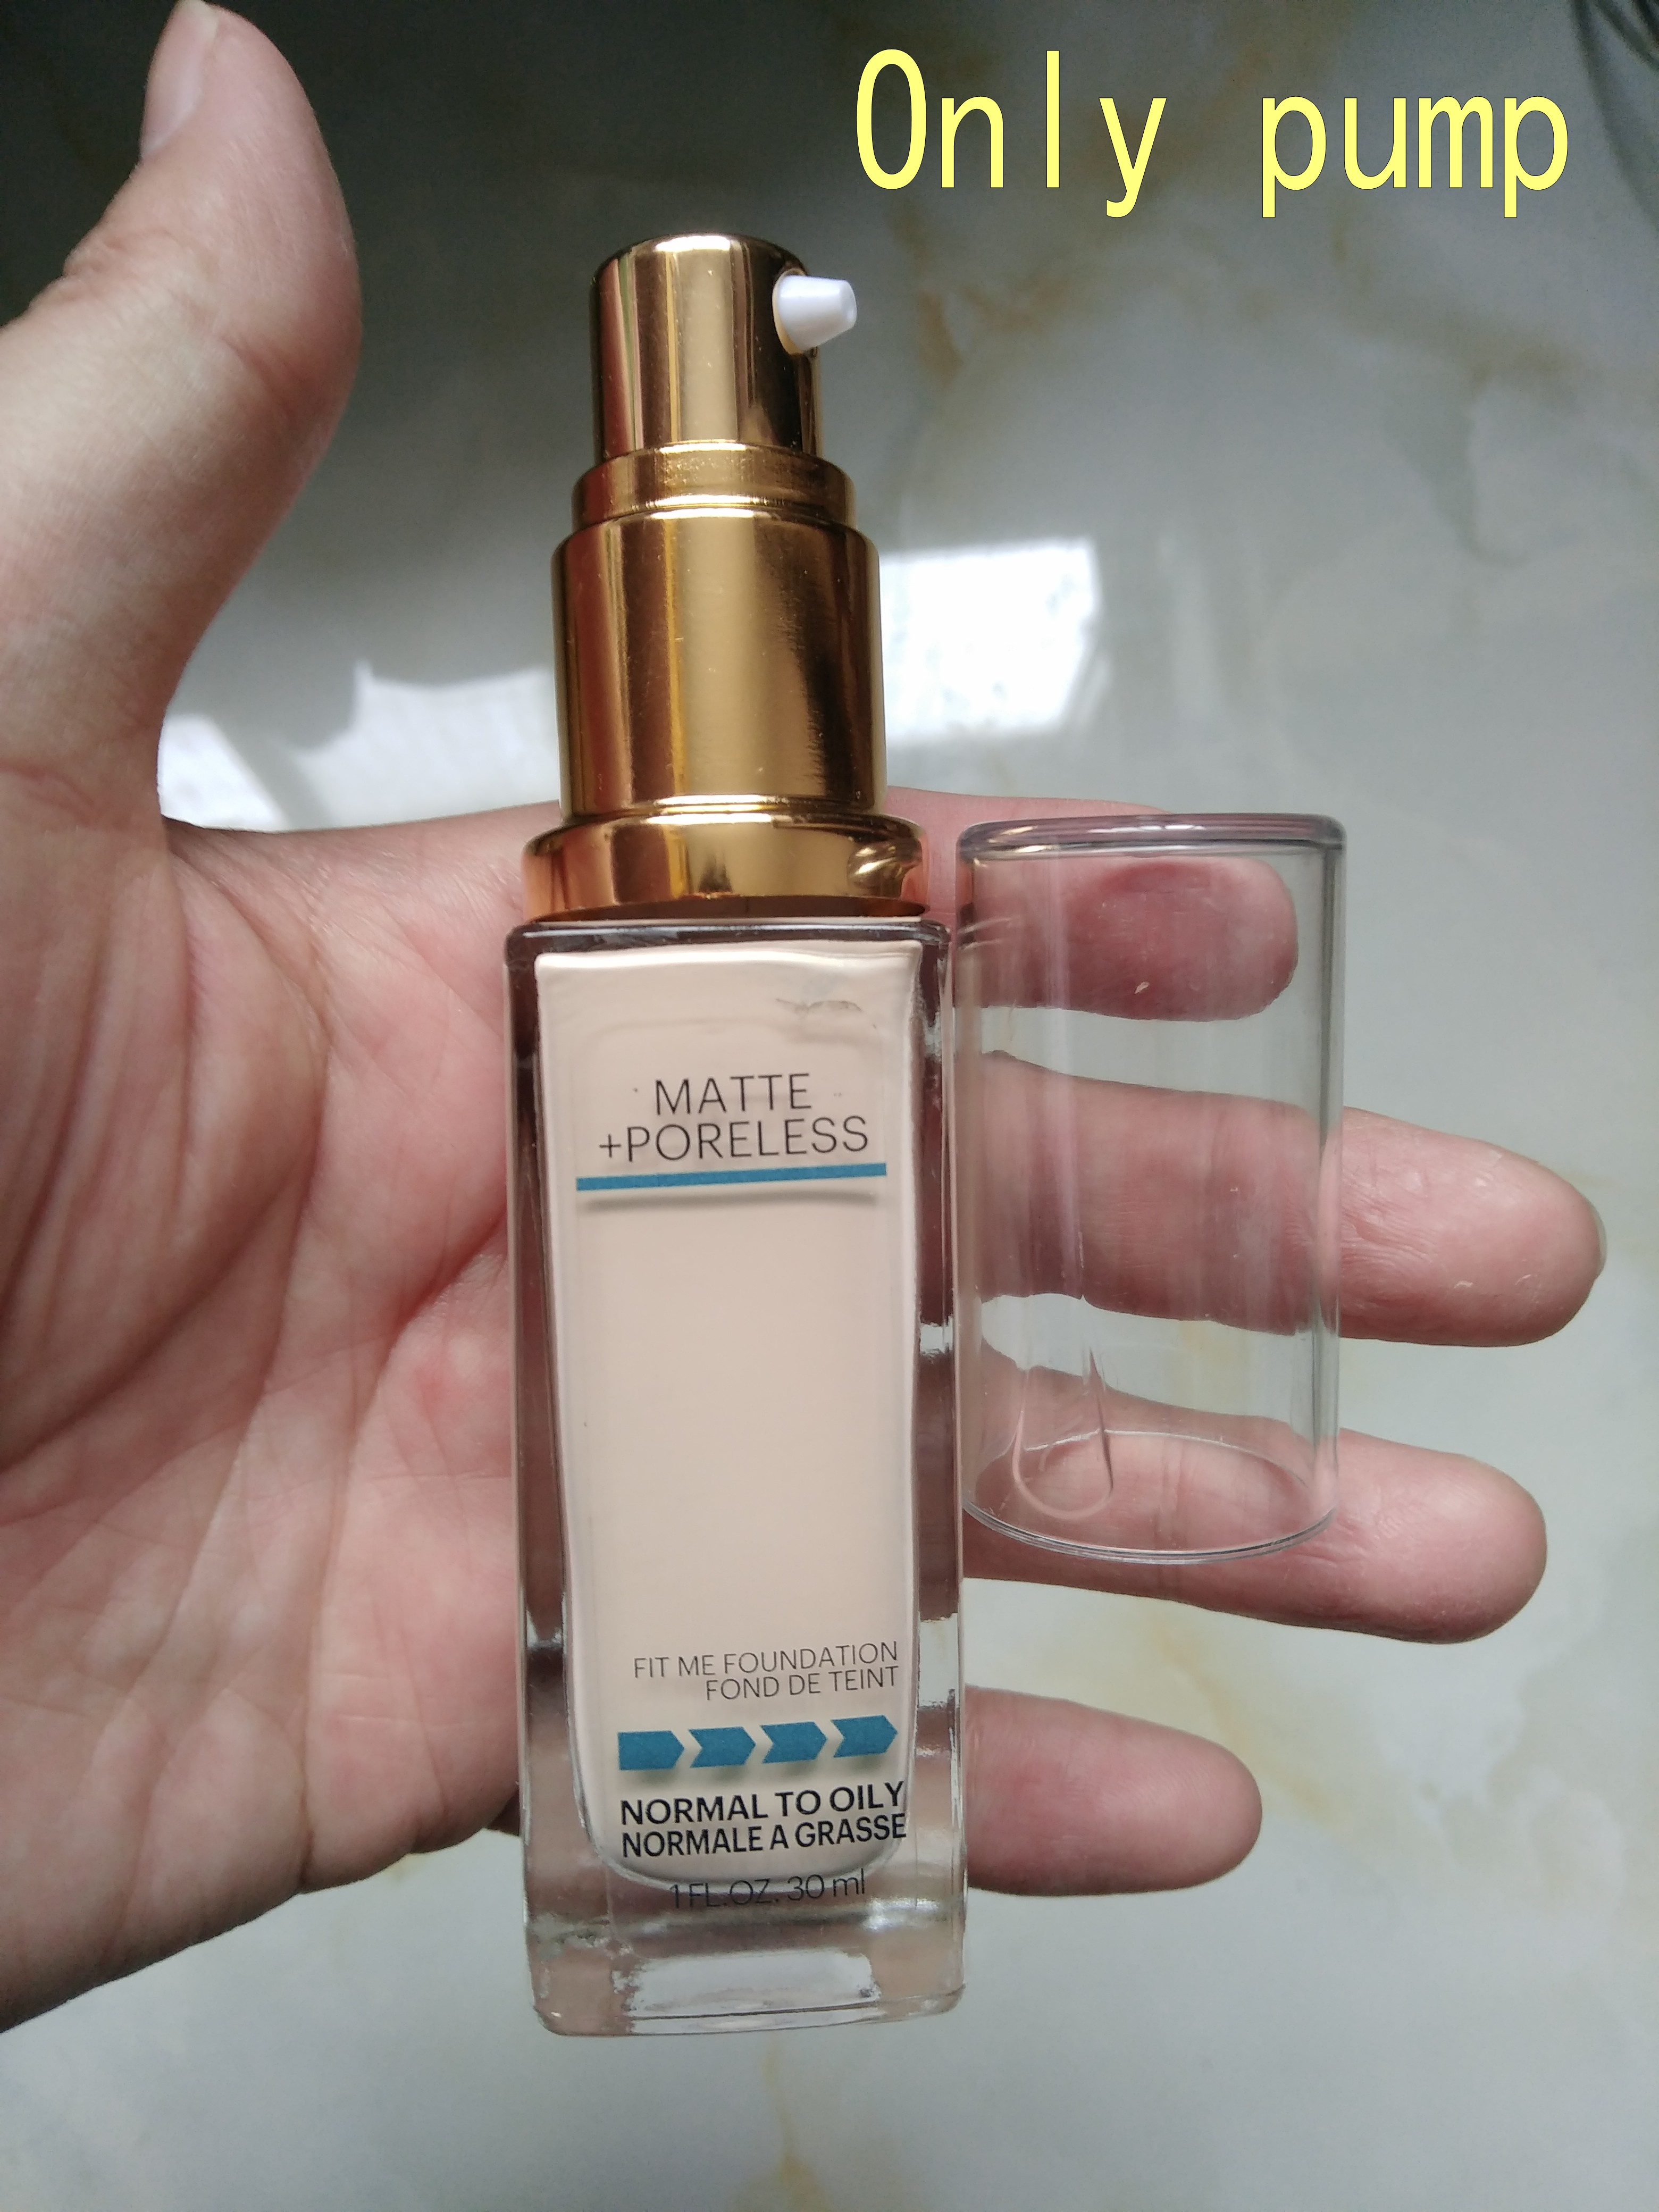 Brand Makeup Tools Foundation Pump Suitable For Fit Me Liquid Foundation Black Or Gold Pump Without Liquid Foundation